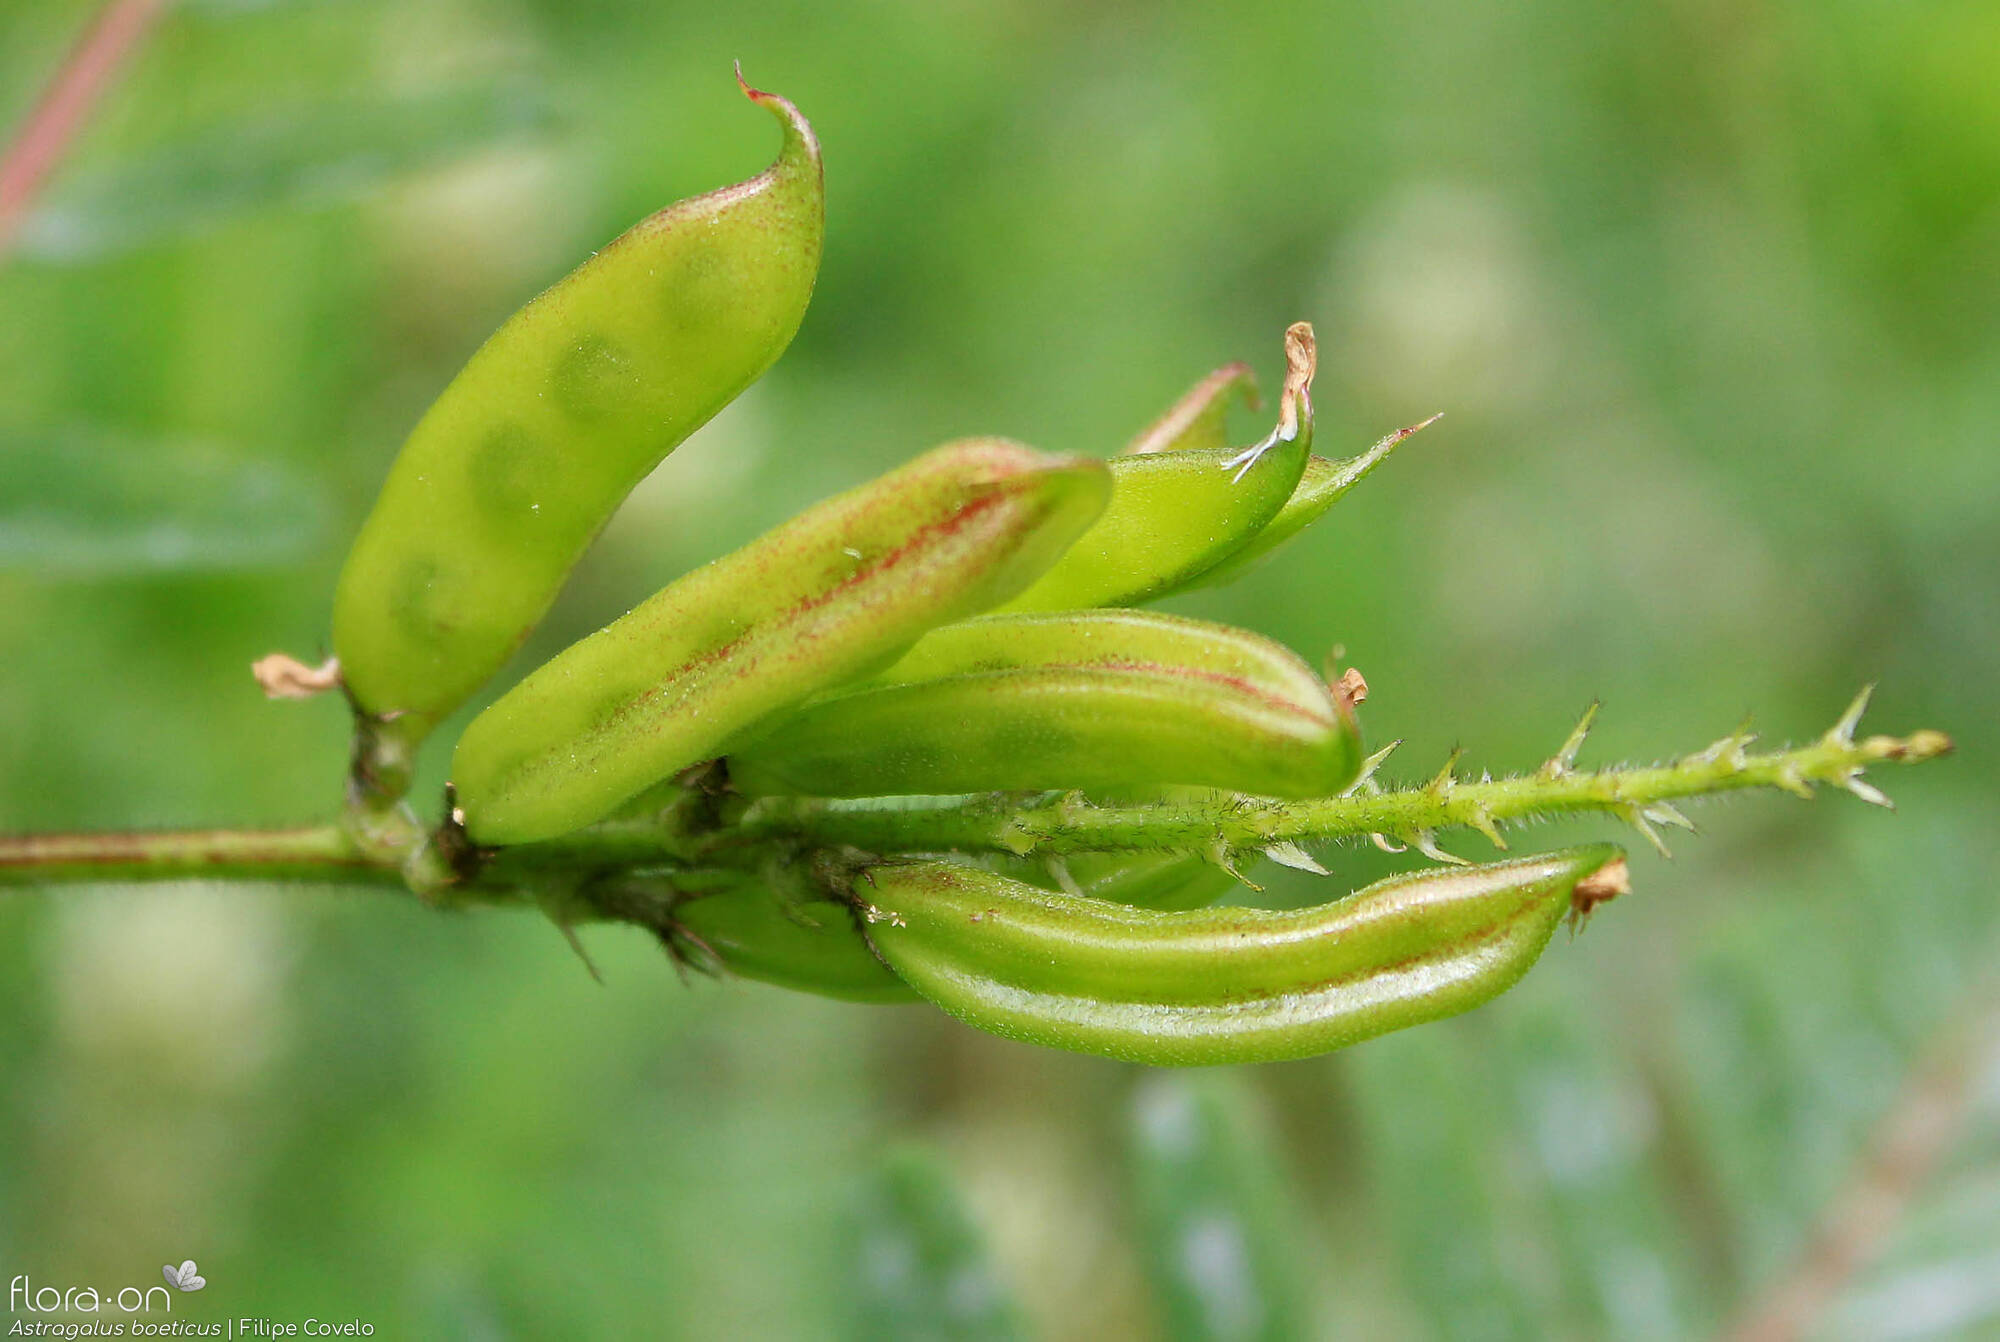 Astragalus boeticus - Fruto | Filipe Covelo; CC BY-NC 4.0